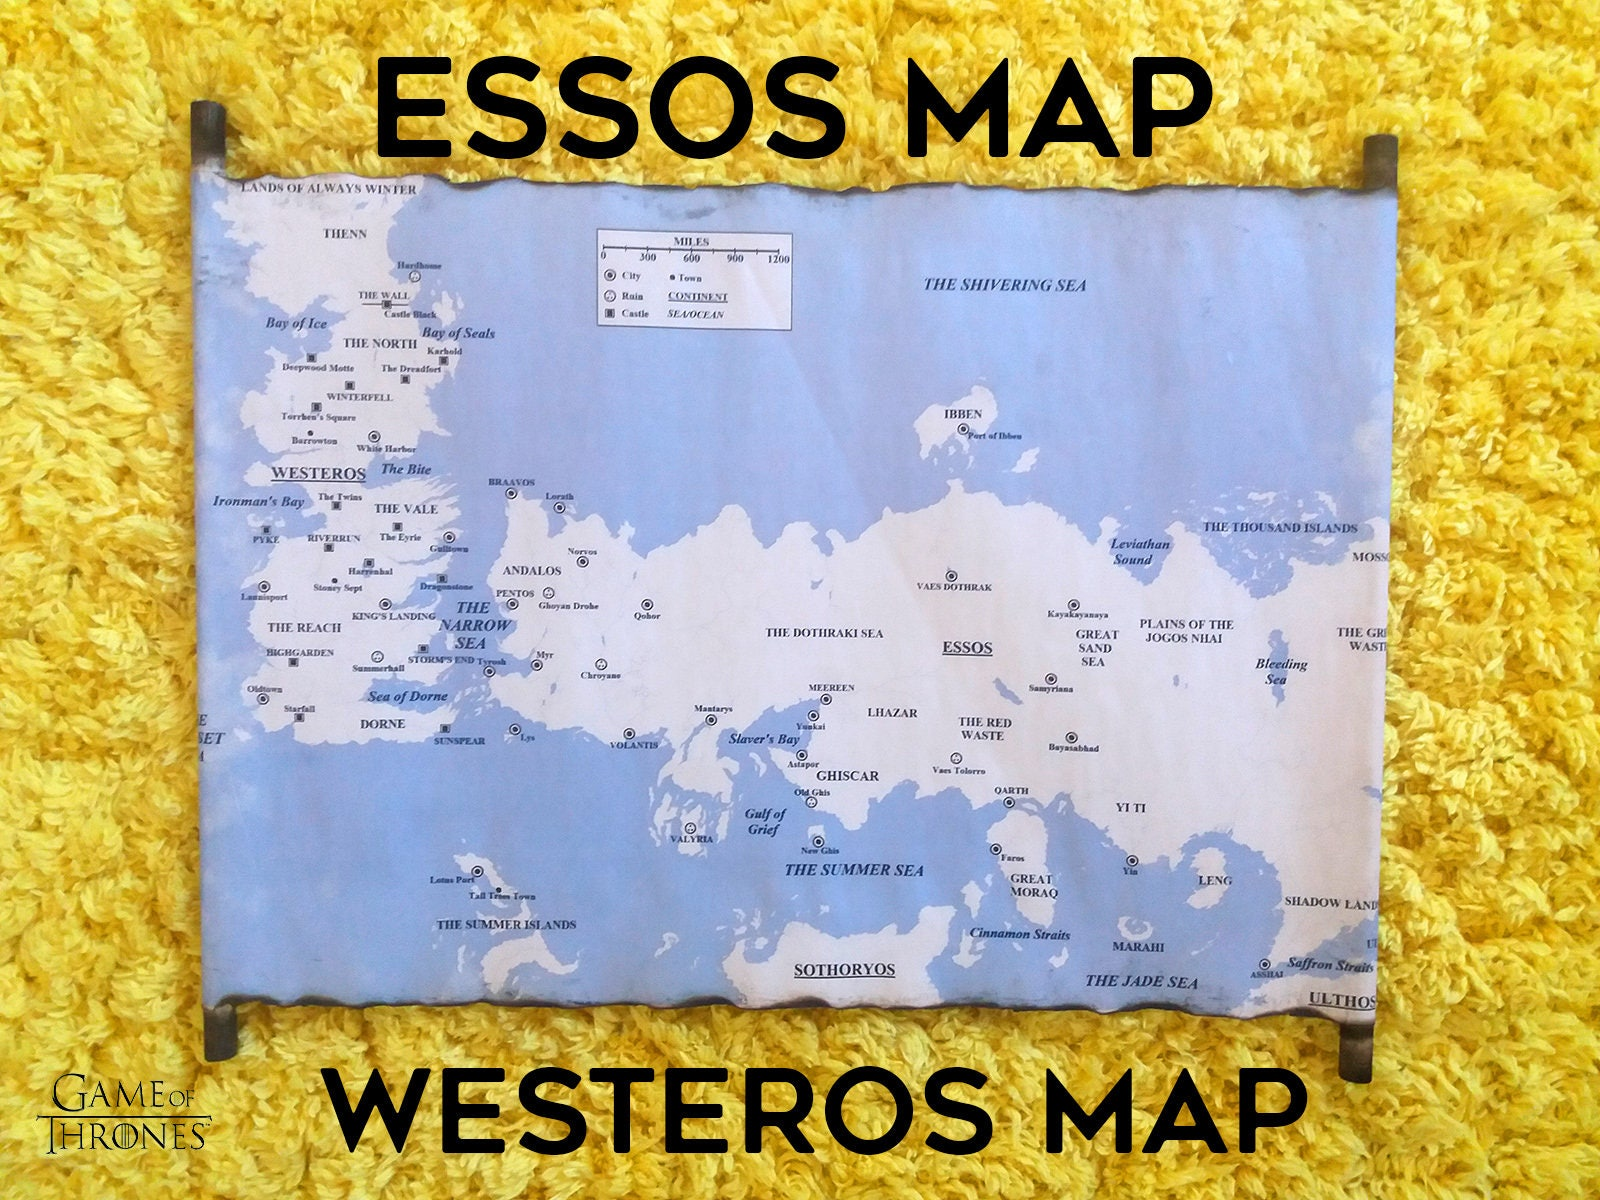 Essos Map and Westeros Map Color Scroll Game of Thrones Map of on full map of gor, full map of alagaesia, full map of north america, full map of narnia, full map of minnesota cities, full map of tamriel, full map of new york, full map of minecraft, full map of ancient greece, full map of essos, full game of thrones character map, full map of namibia, full map of the usa, full map of kenya, full map of earth, full map of arlington tx, full map of caribbean, full map of mesopotamia, full map of united states, full map of world,